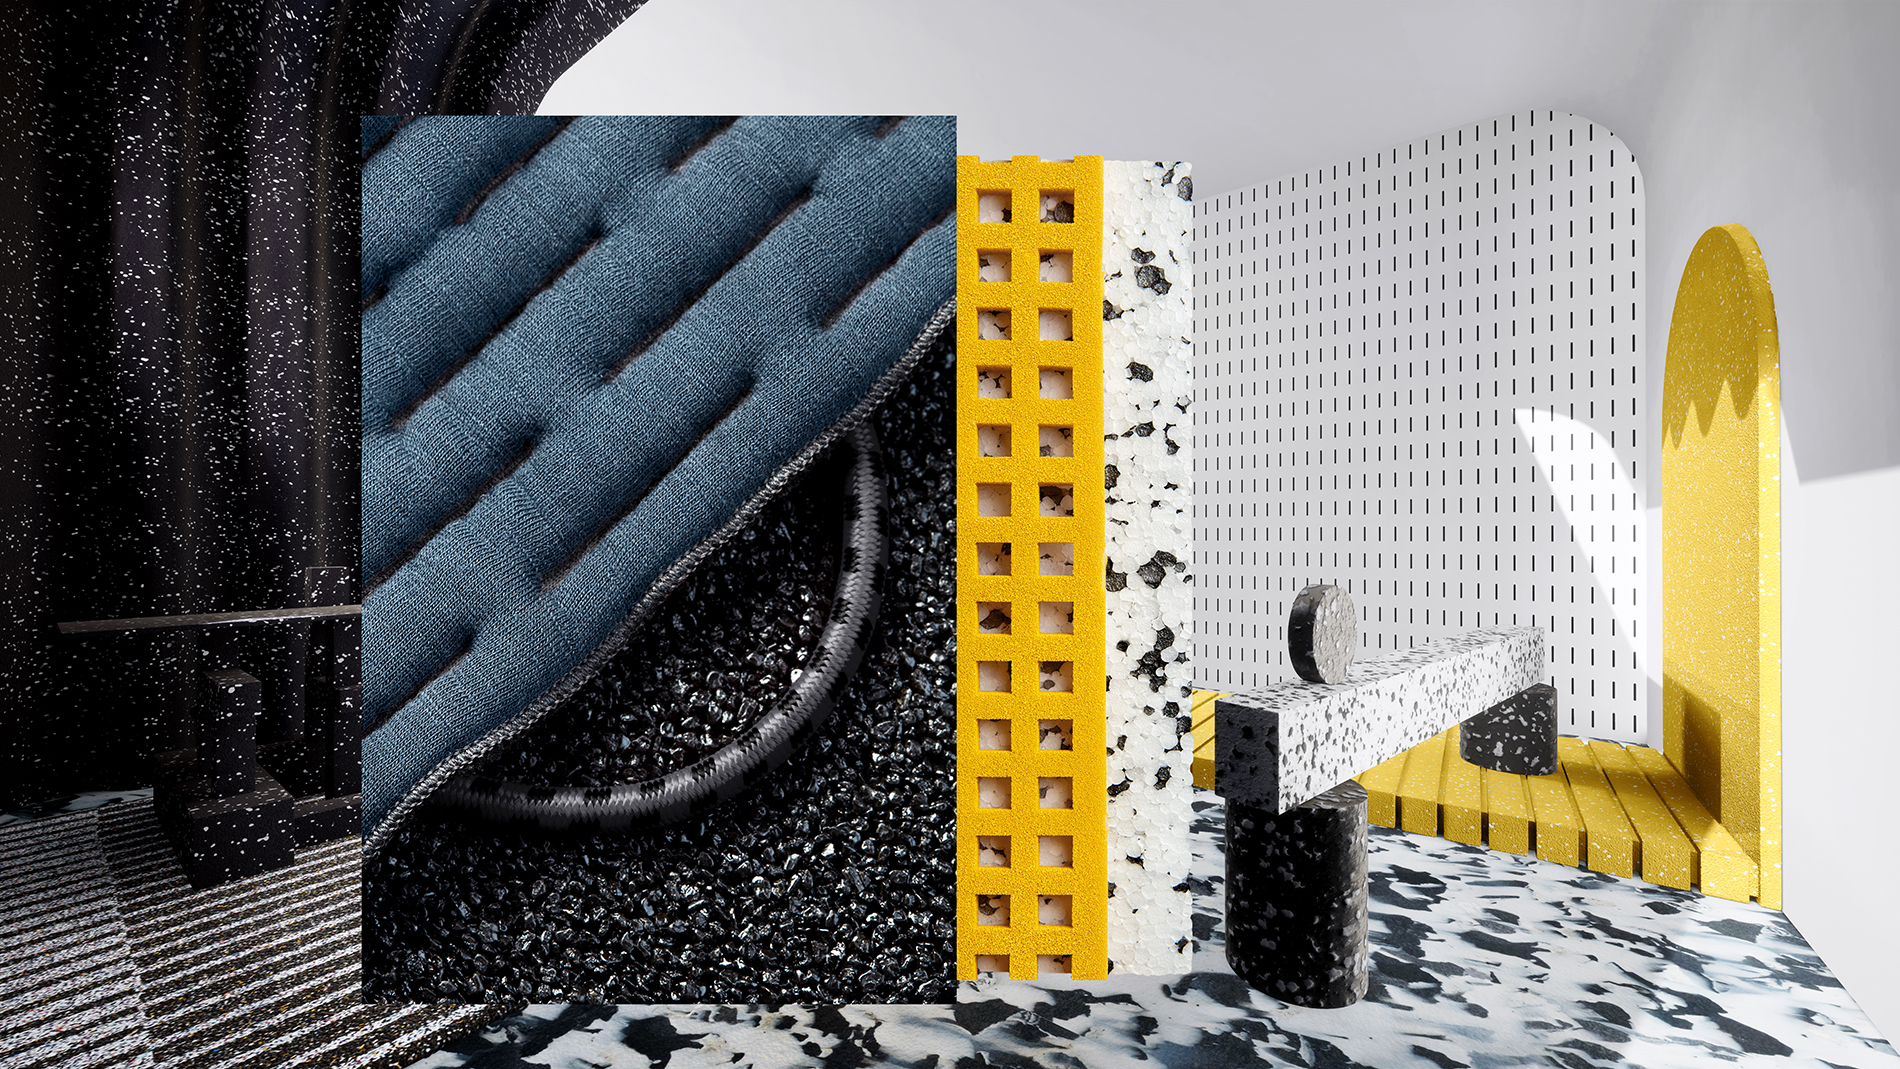 Active Urban textures: image by envisions for Heimtextil 2020